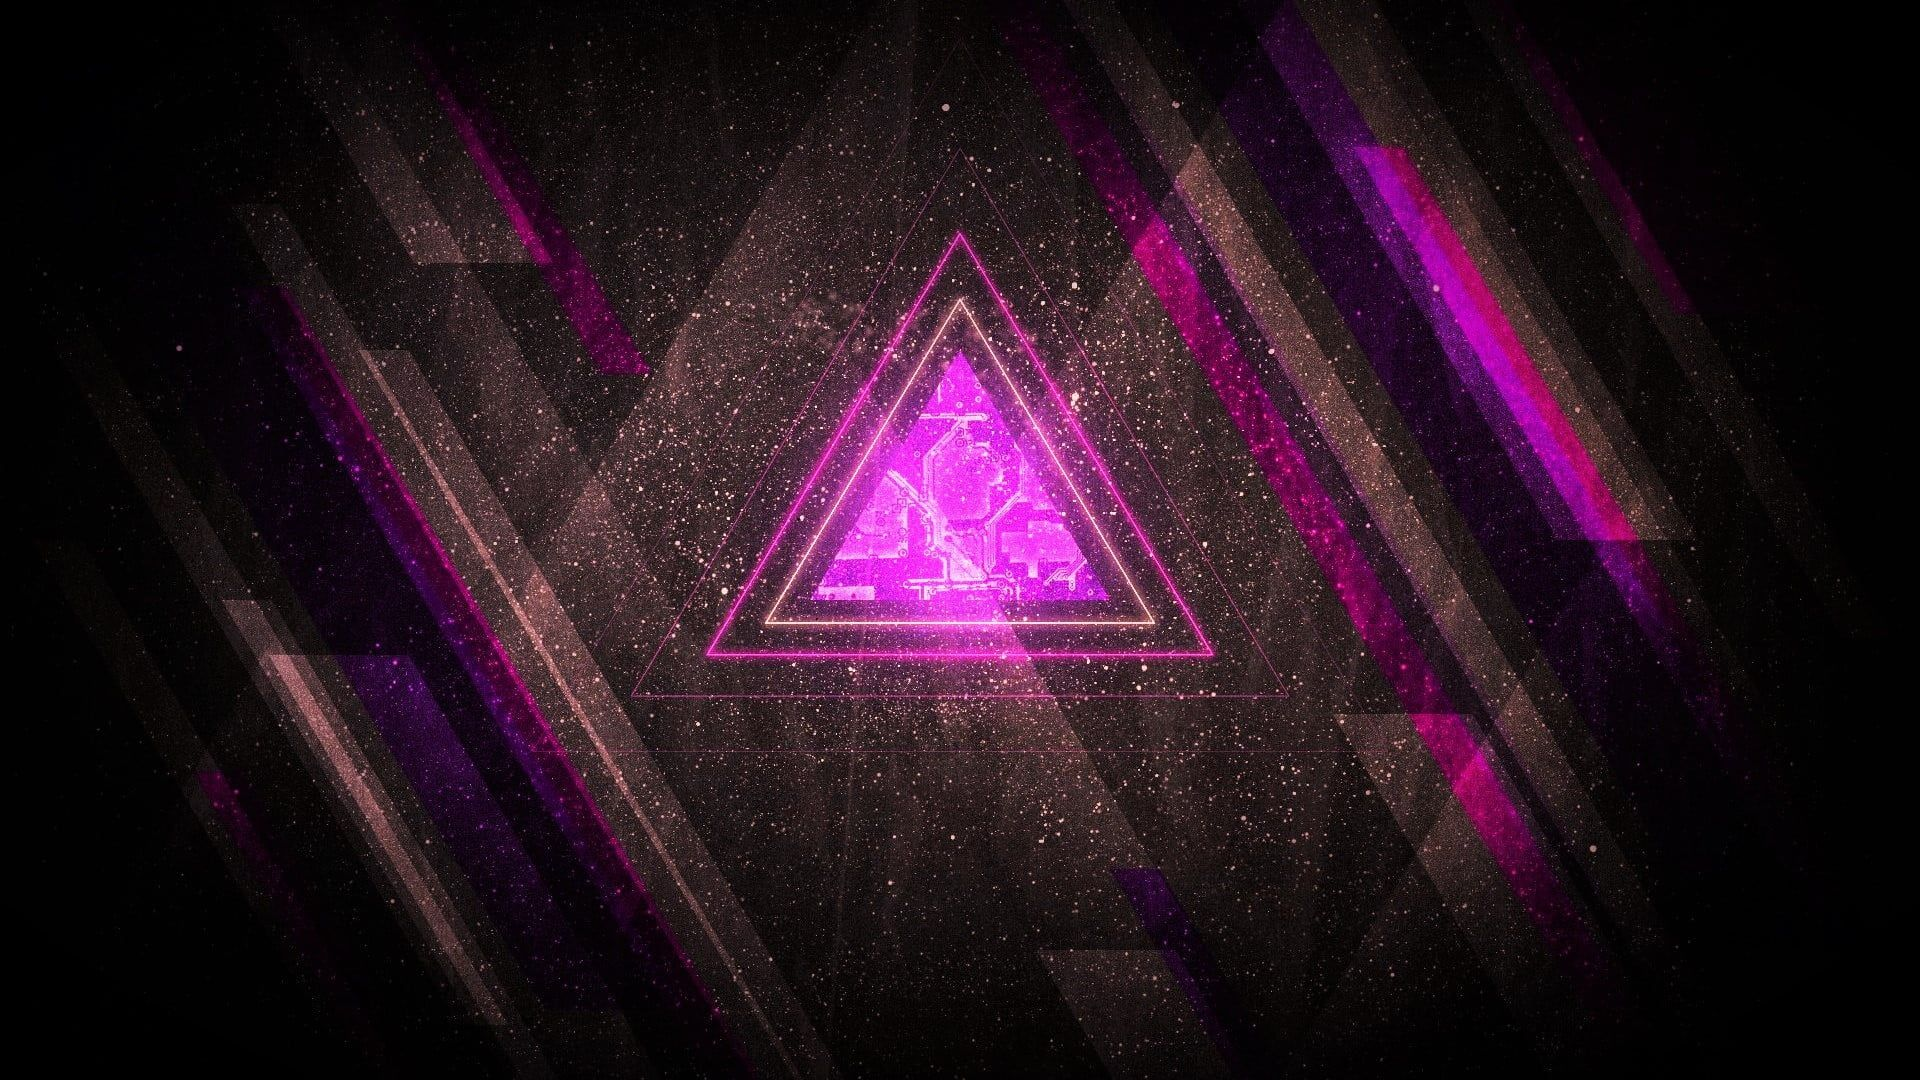 Purple And Black Logo Abstract Purple Triangle Shards Digital Art 1080p Wallpaper Hd Abstract Wallpaper Backgrounds Abstract Wallpaper Gaming Wallpapers